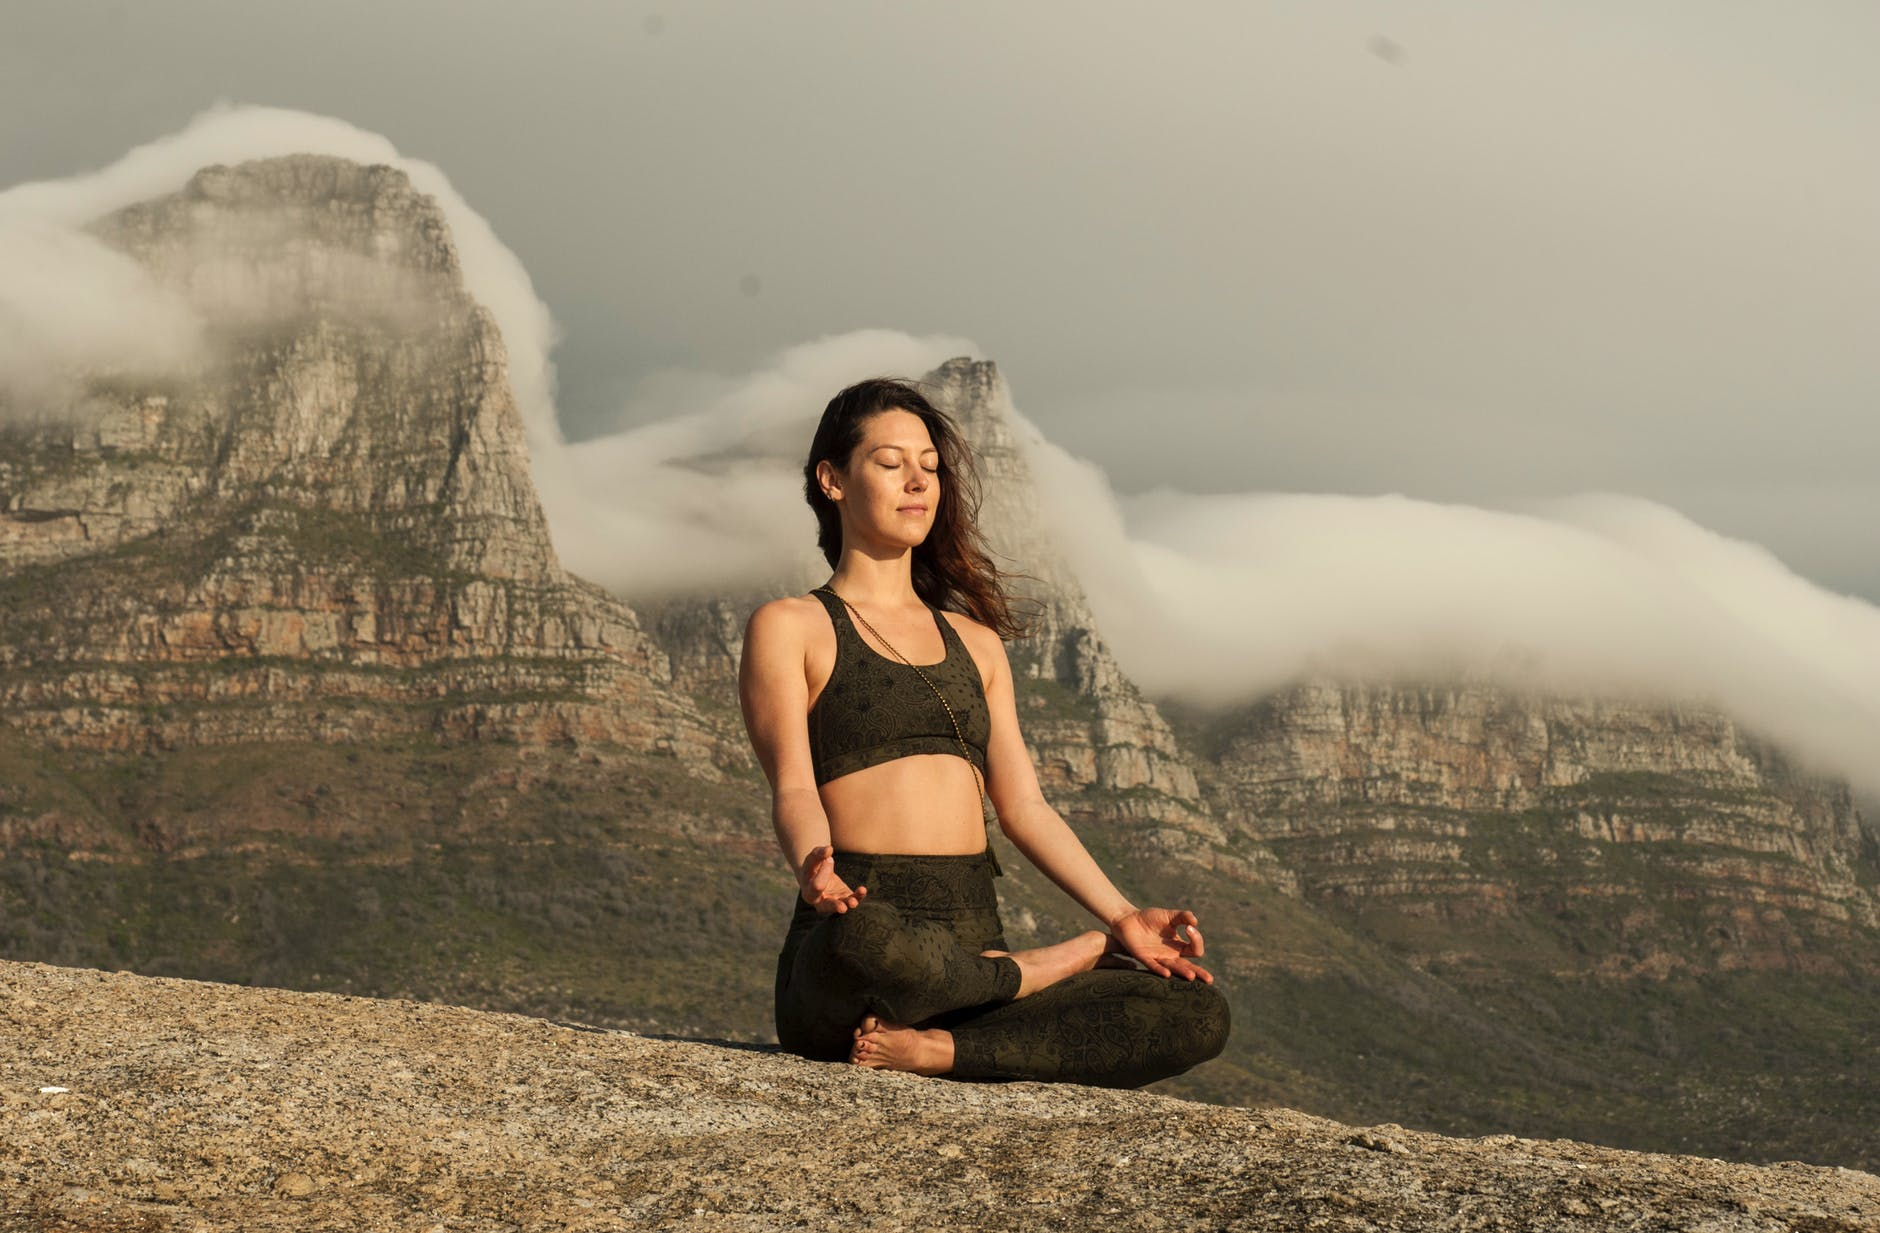 FROM MEDITATION TO INSPIRATION –A WAY OF LIFE